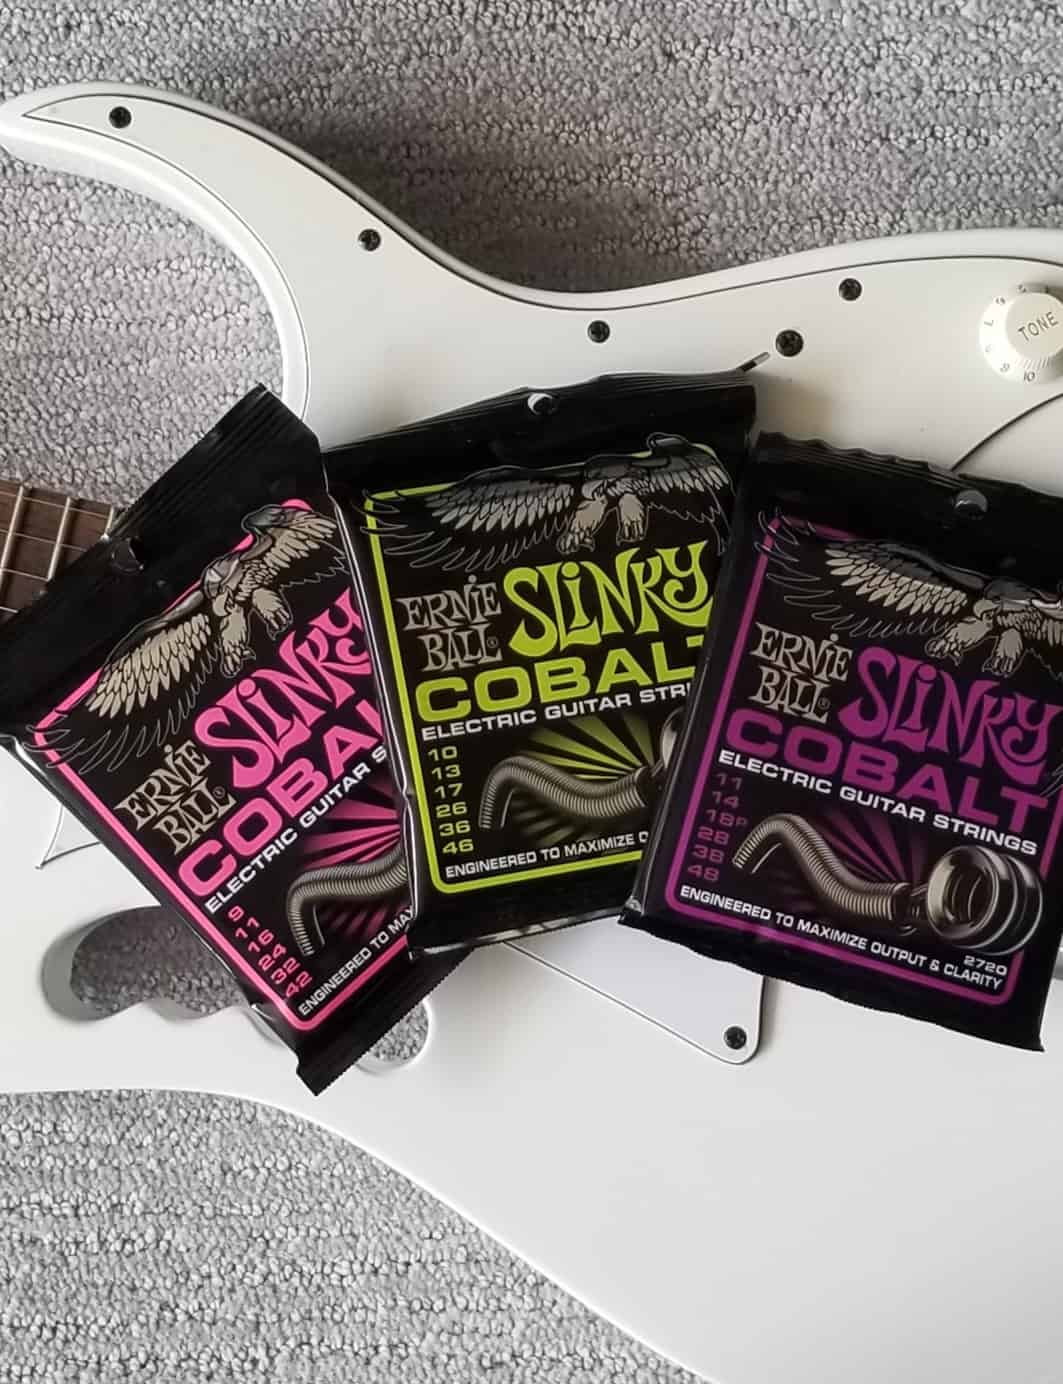 Ernie Ball Slinky Cobalt Electric guitar strings